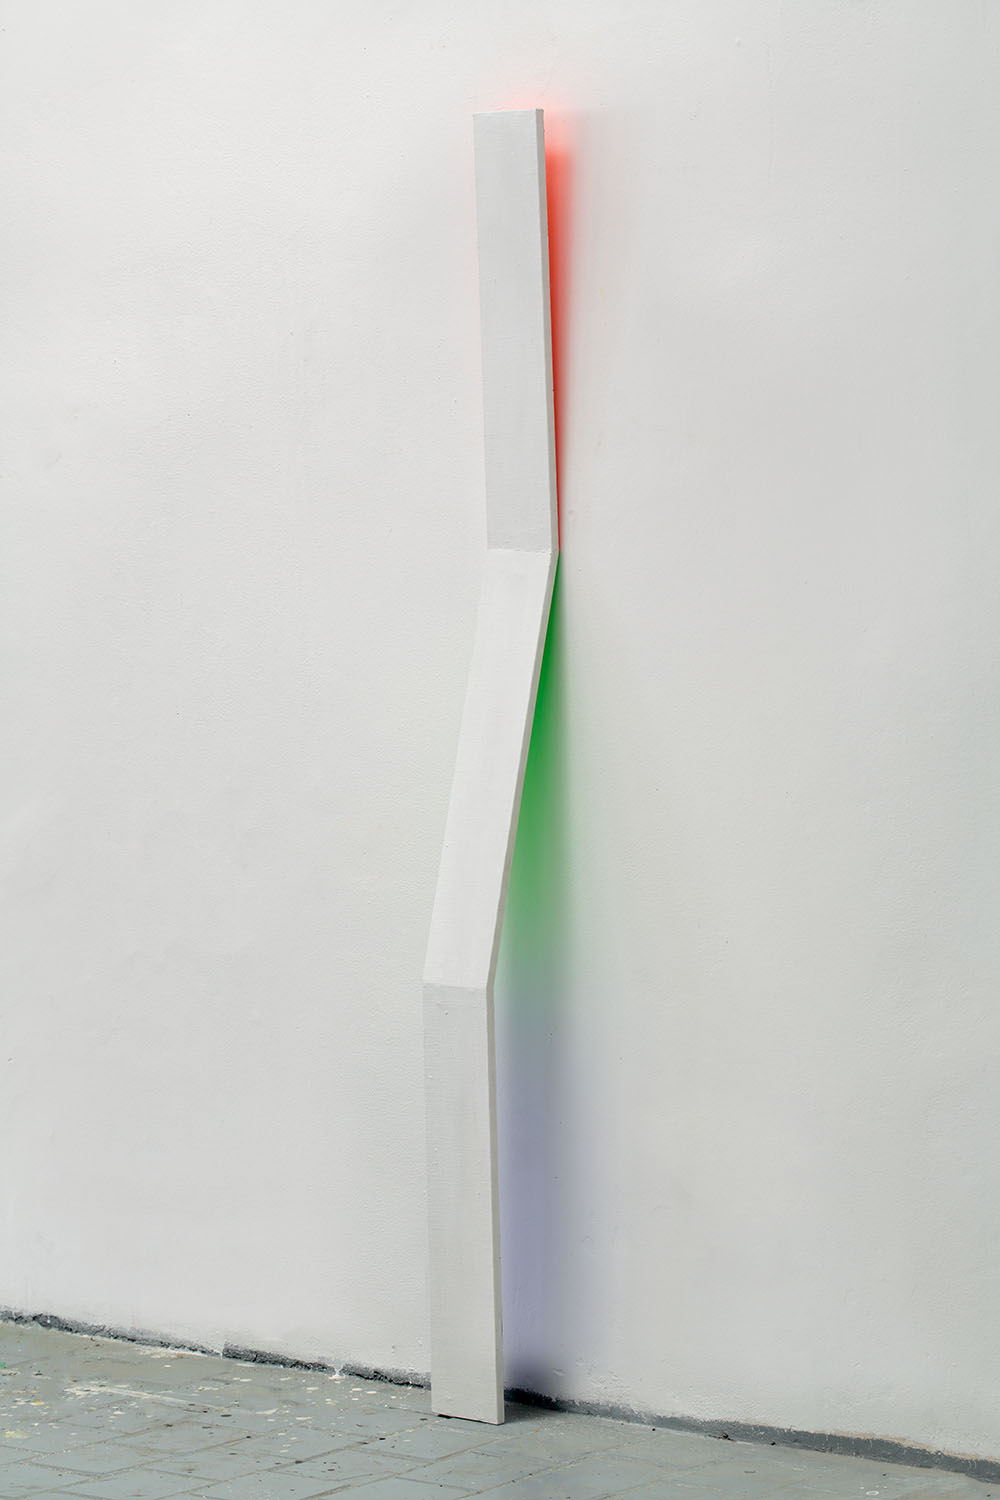 RGB3D field no. 6 from DATA series / 180 x 12 x 10 cm / mixed media, canvas / 2015